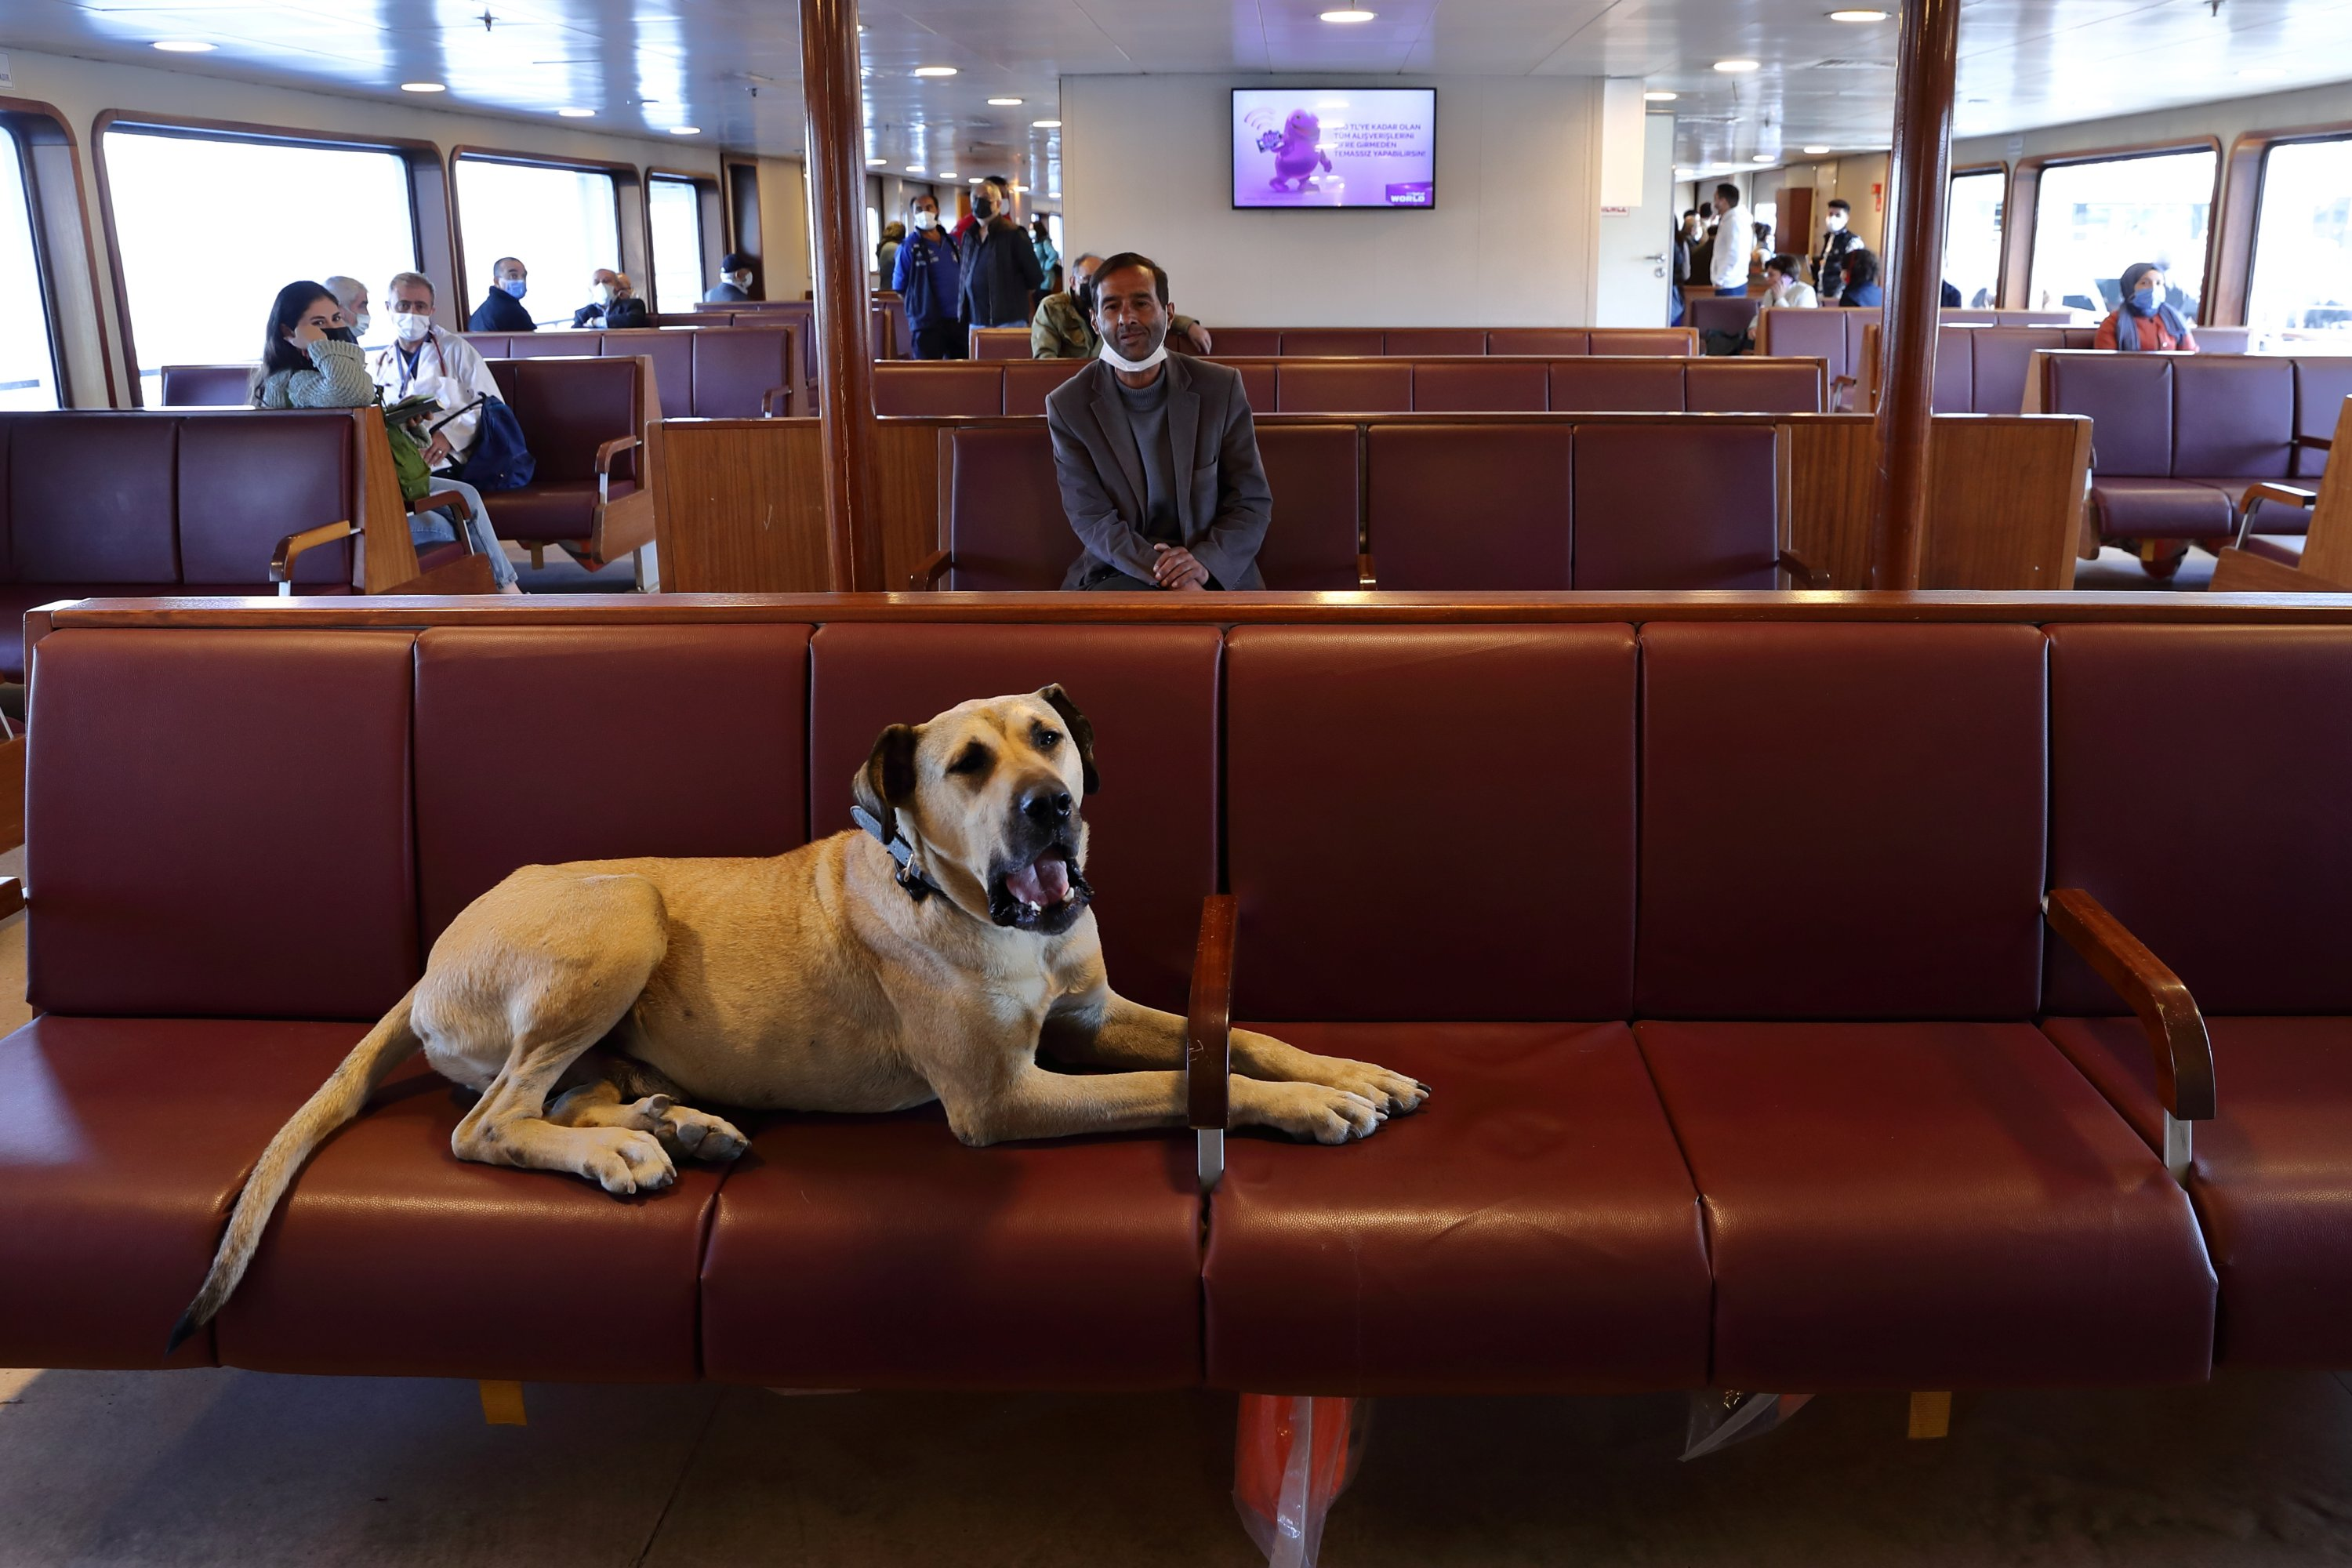 Istanbul's commuter dog Boji wins hearts of fellow passengers | Daily Sabah